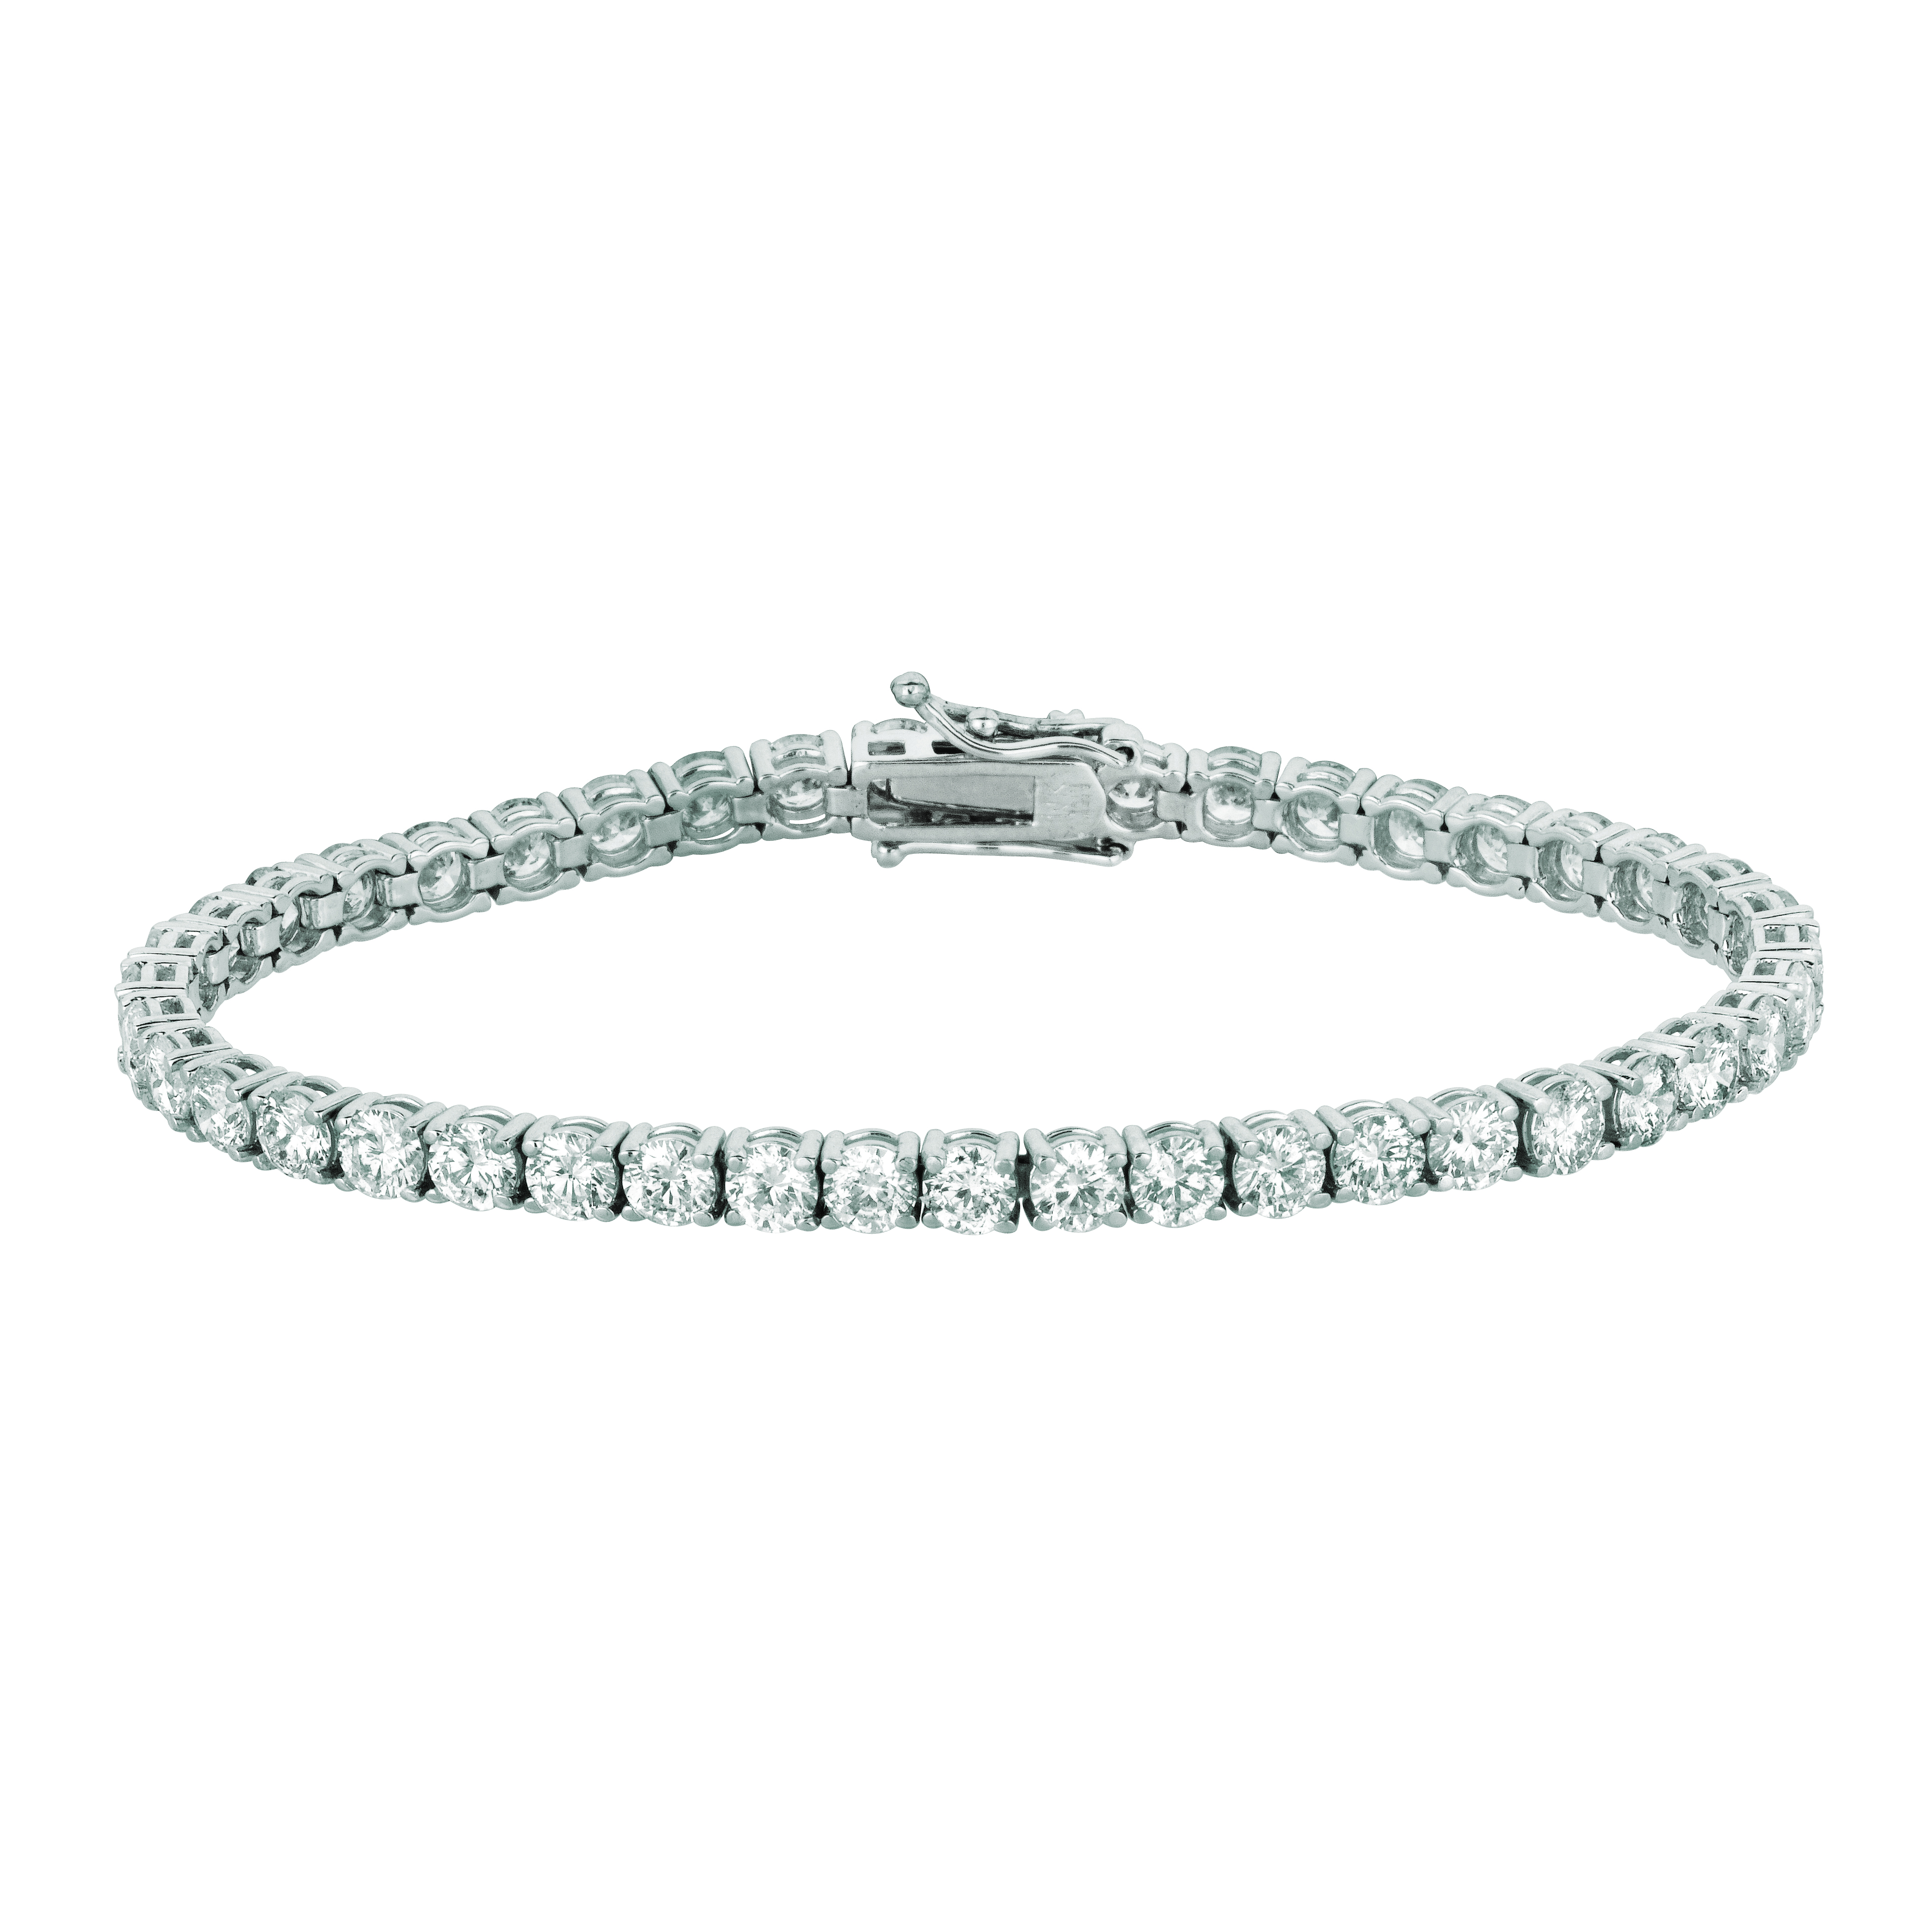 20 Pointer diamond bracelet. Price: $18220.67